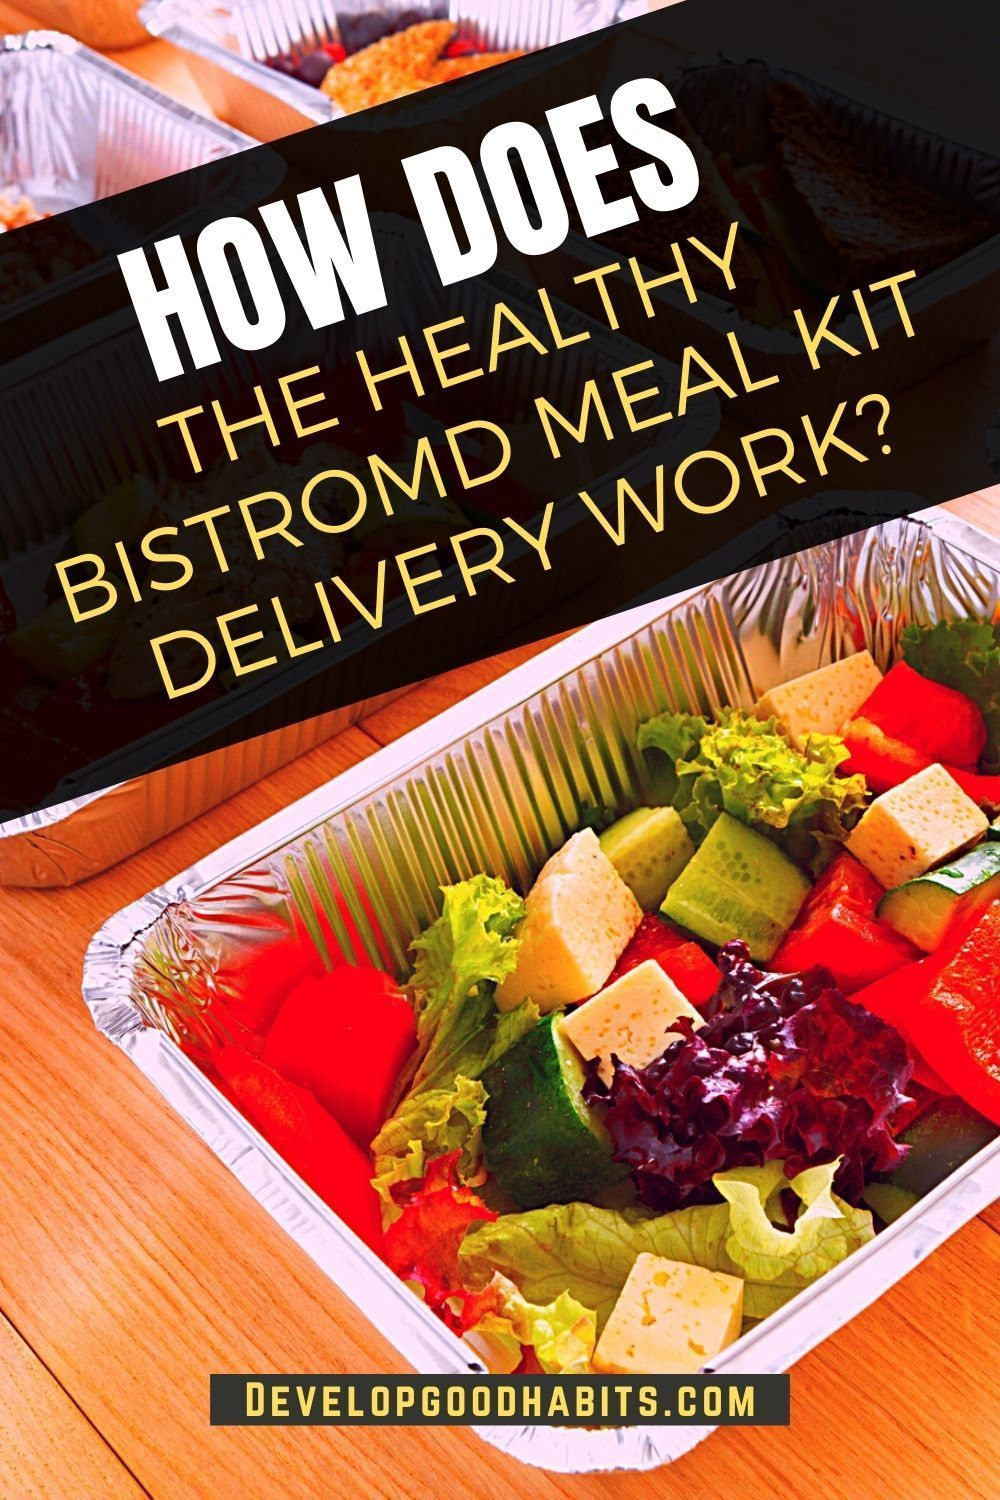 13 Best Meal Kit Delivery Services For 2020 In 2020 Meal Kit Meal Kit Delivery Meals